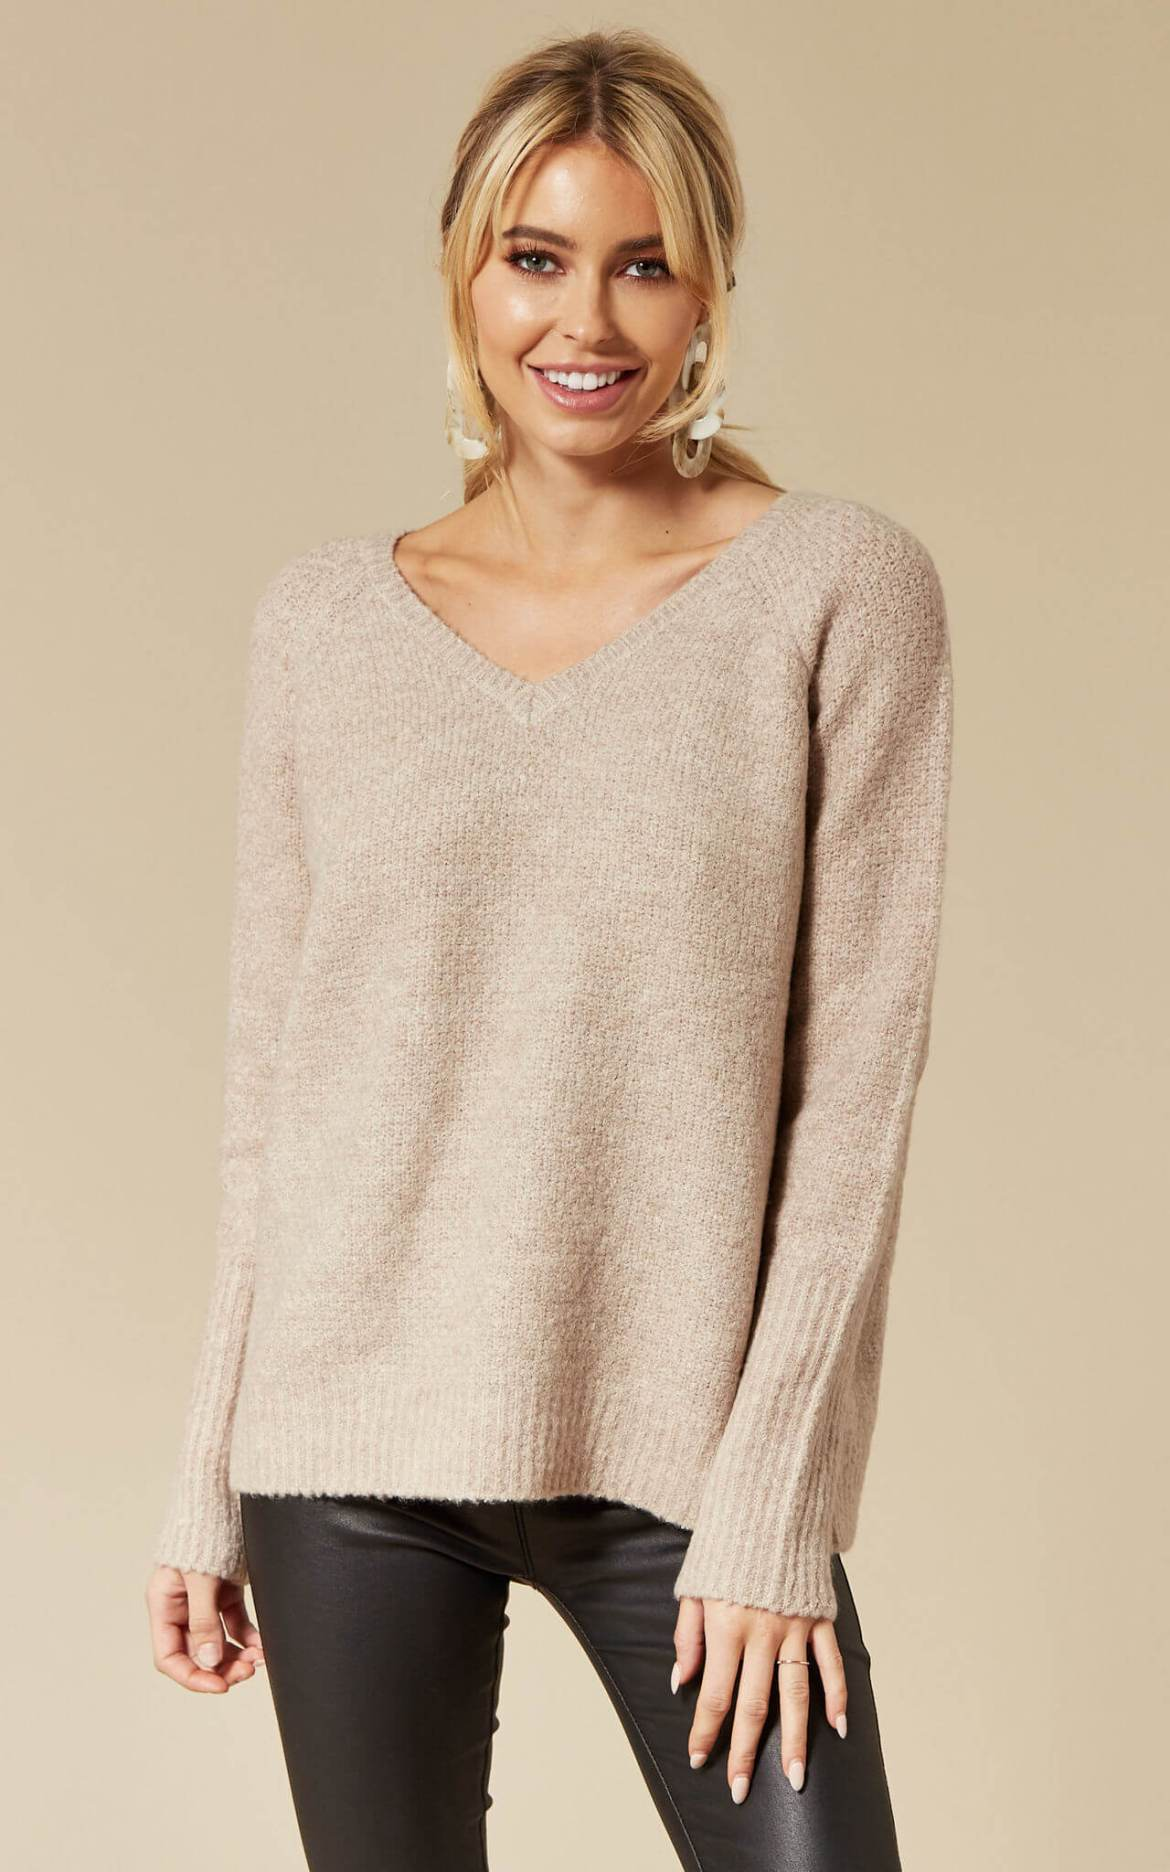 Model wears a natural coloured jumper with a v neckline